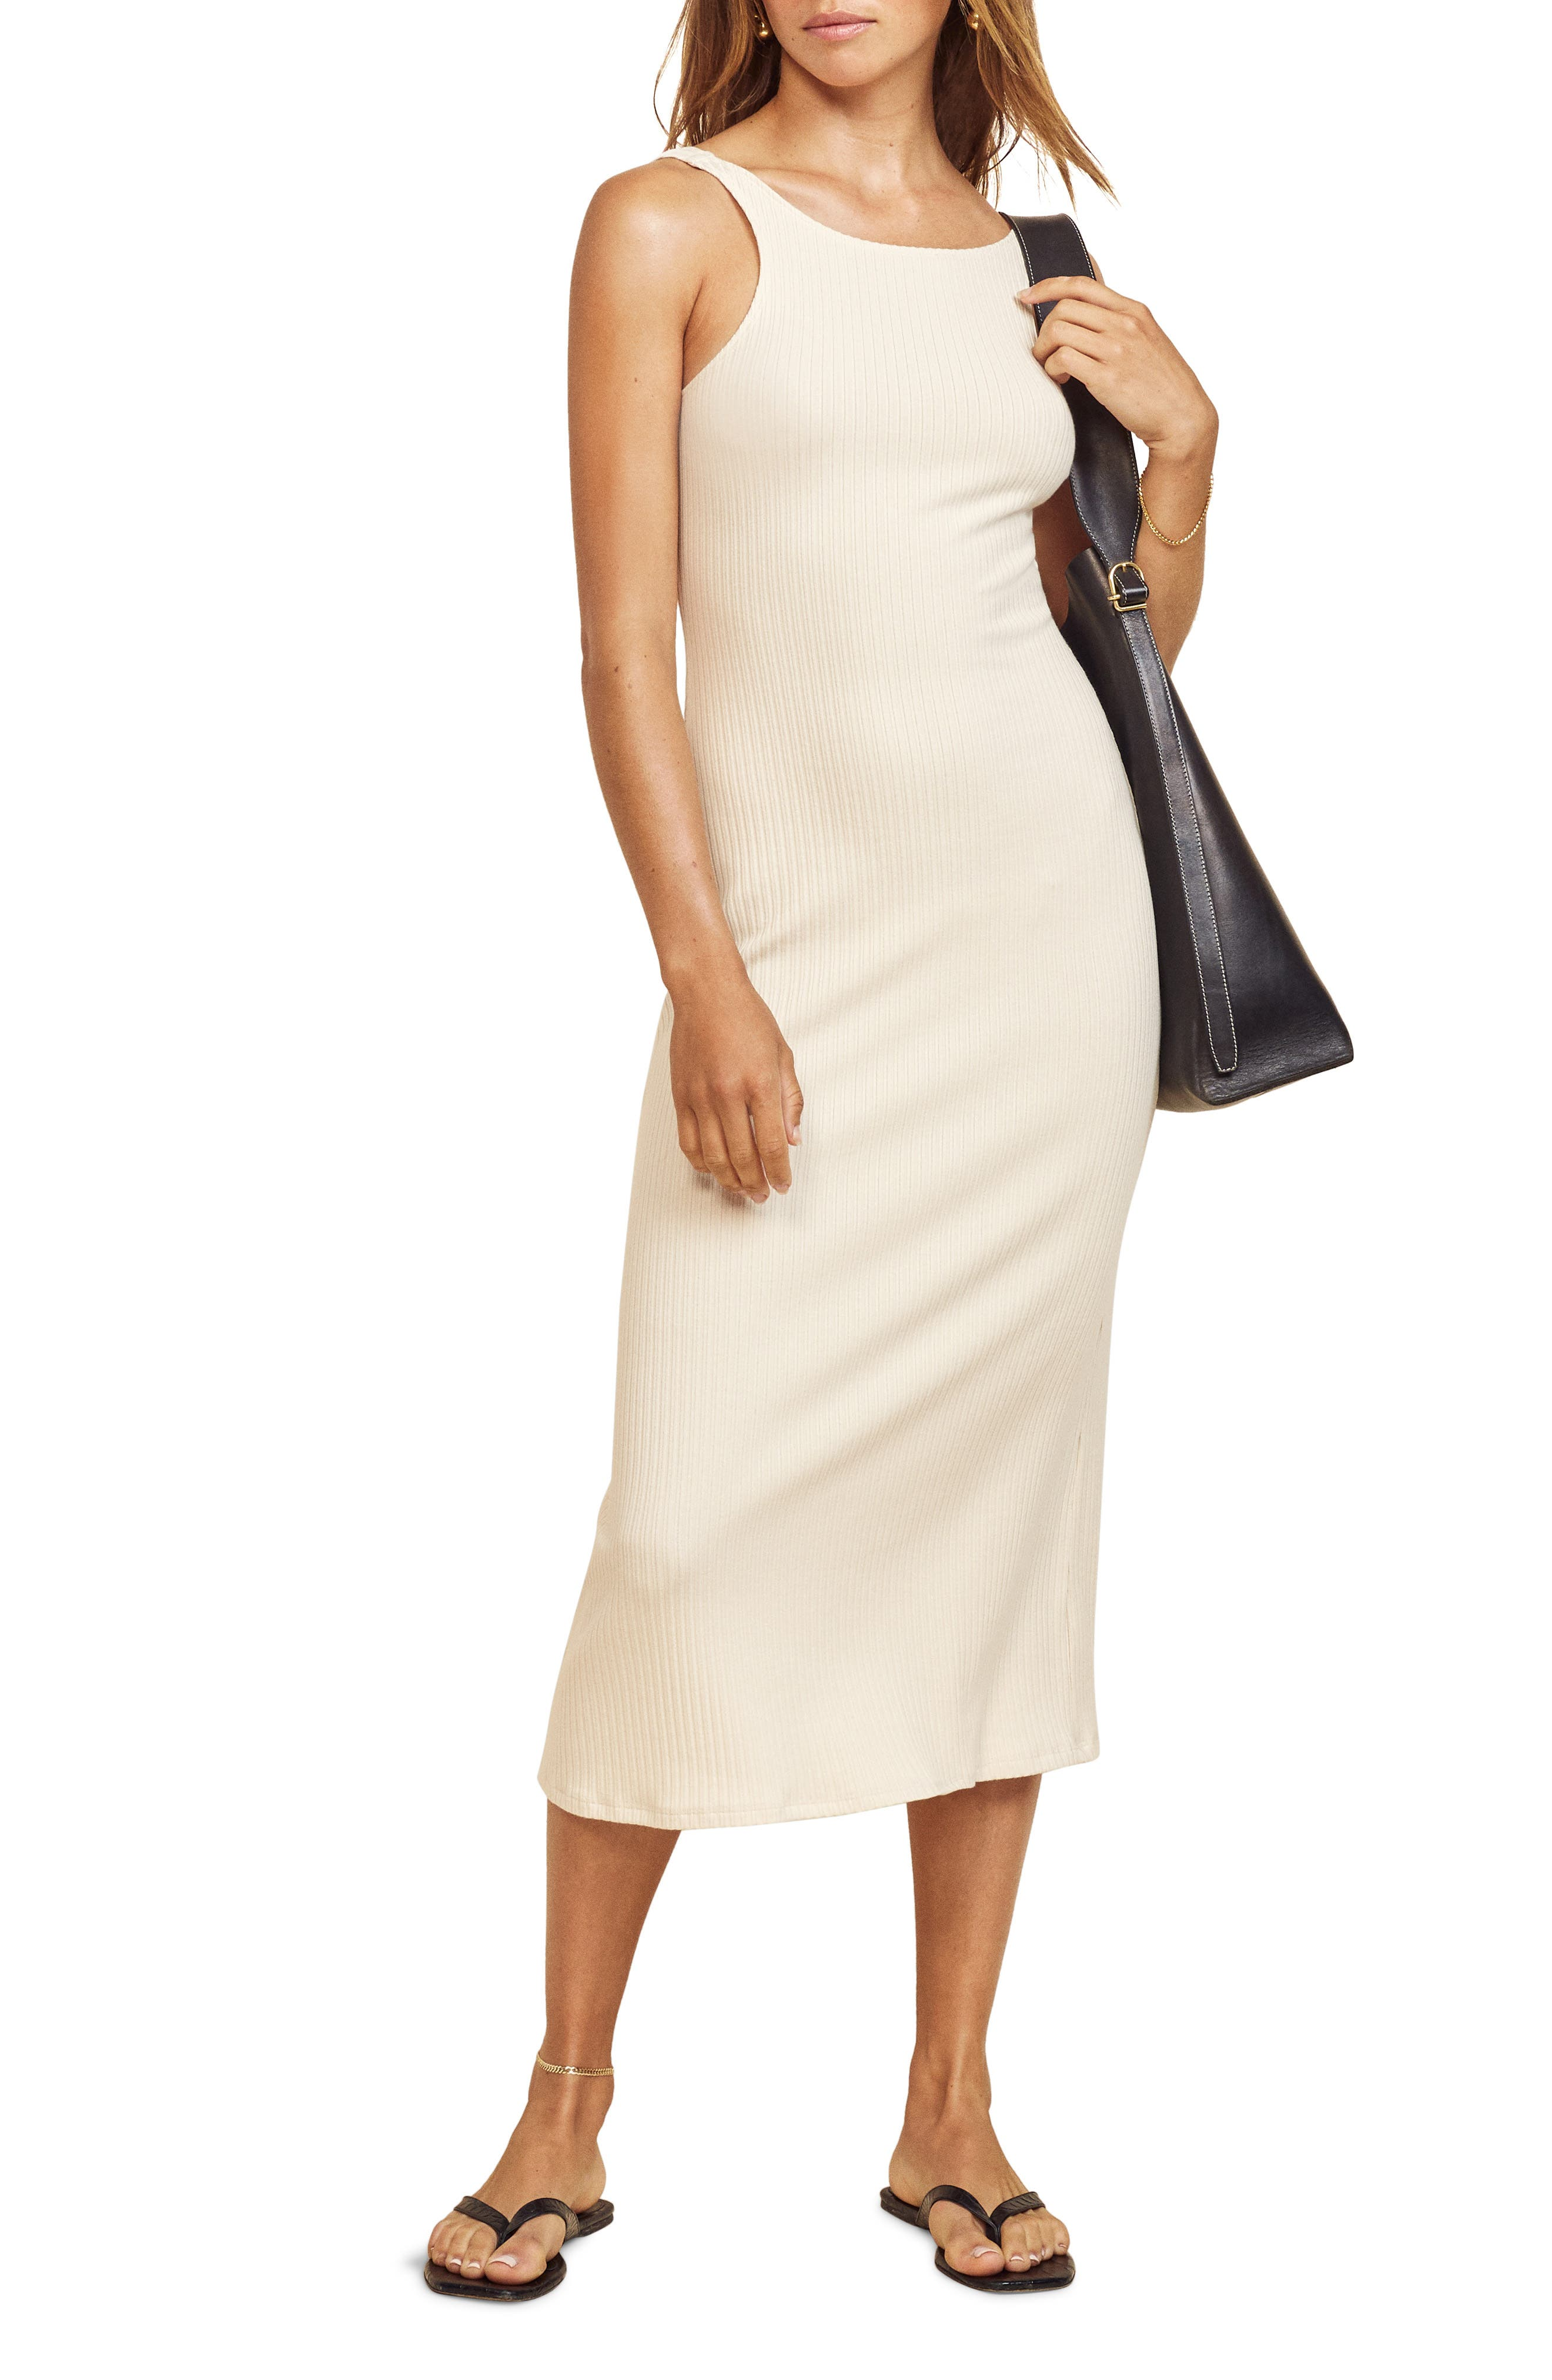 This neutral-hued knit dress is styled in a sleeveless silhouette and textured with soft ribbing for a shapely fit. Style Name: Reformation Bel Ribbed Sleeveless Midi Dress. Style Number: 6086408. Available in stores.